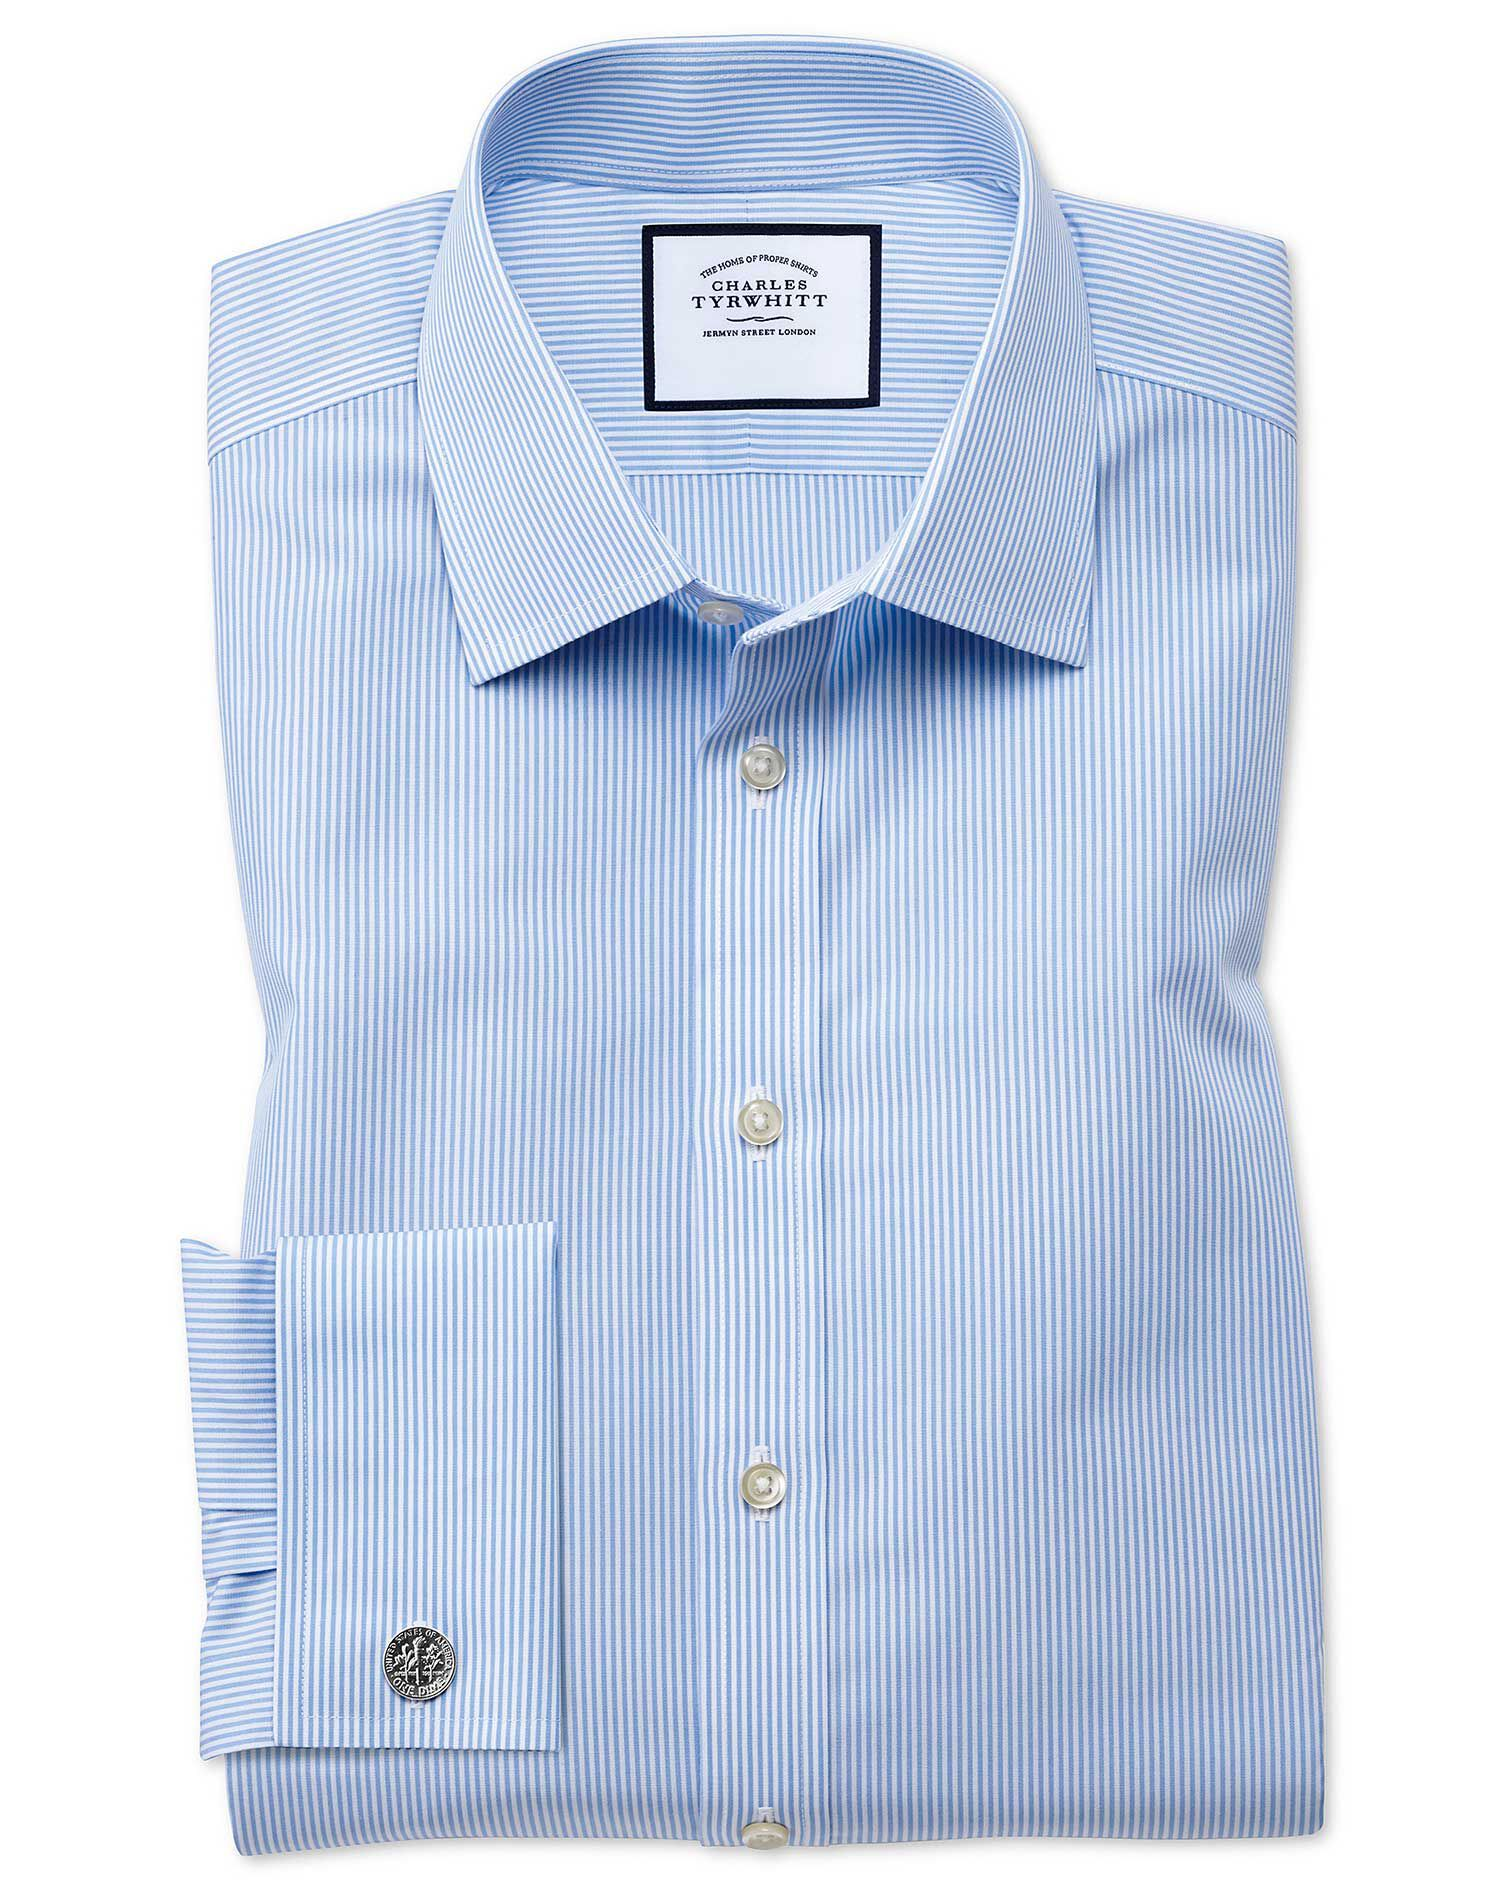 Extra Slim Fit Non-Iron Bengal Stripe Sky Blue Cotton Formal Shirt Single Cuff Size 17.5/36 by Charl